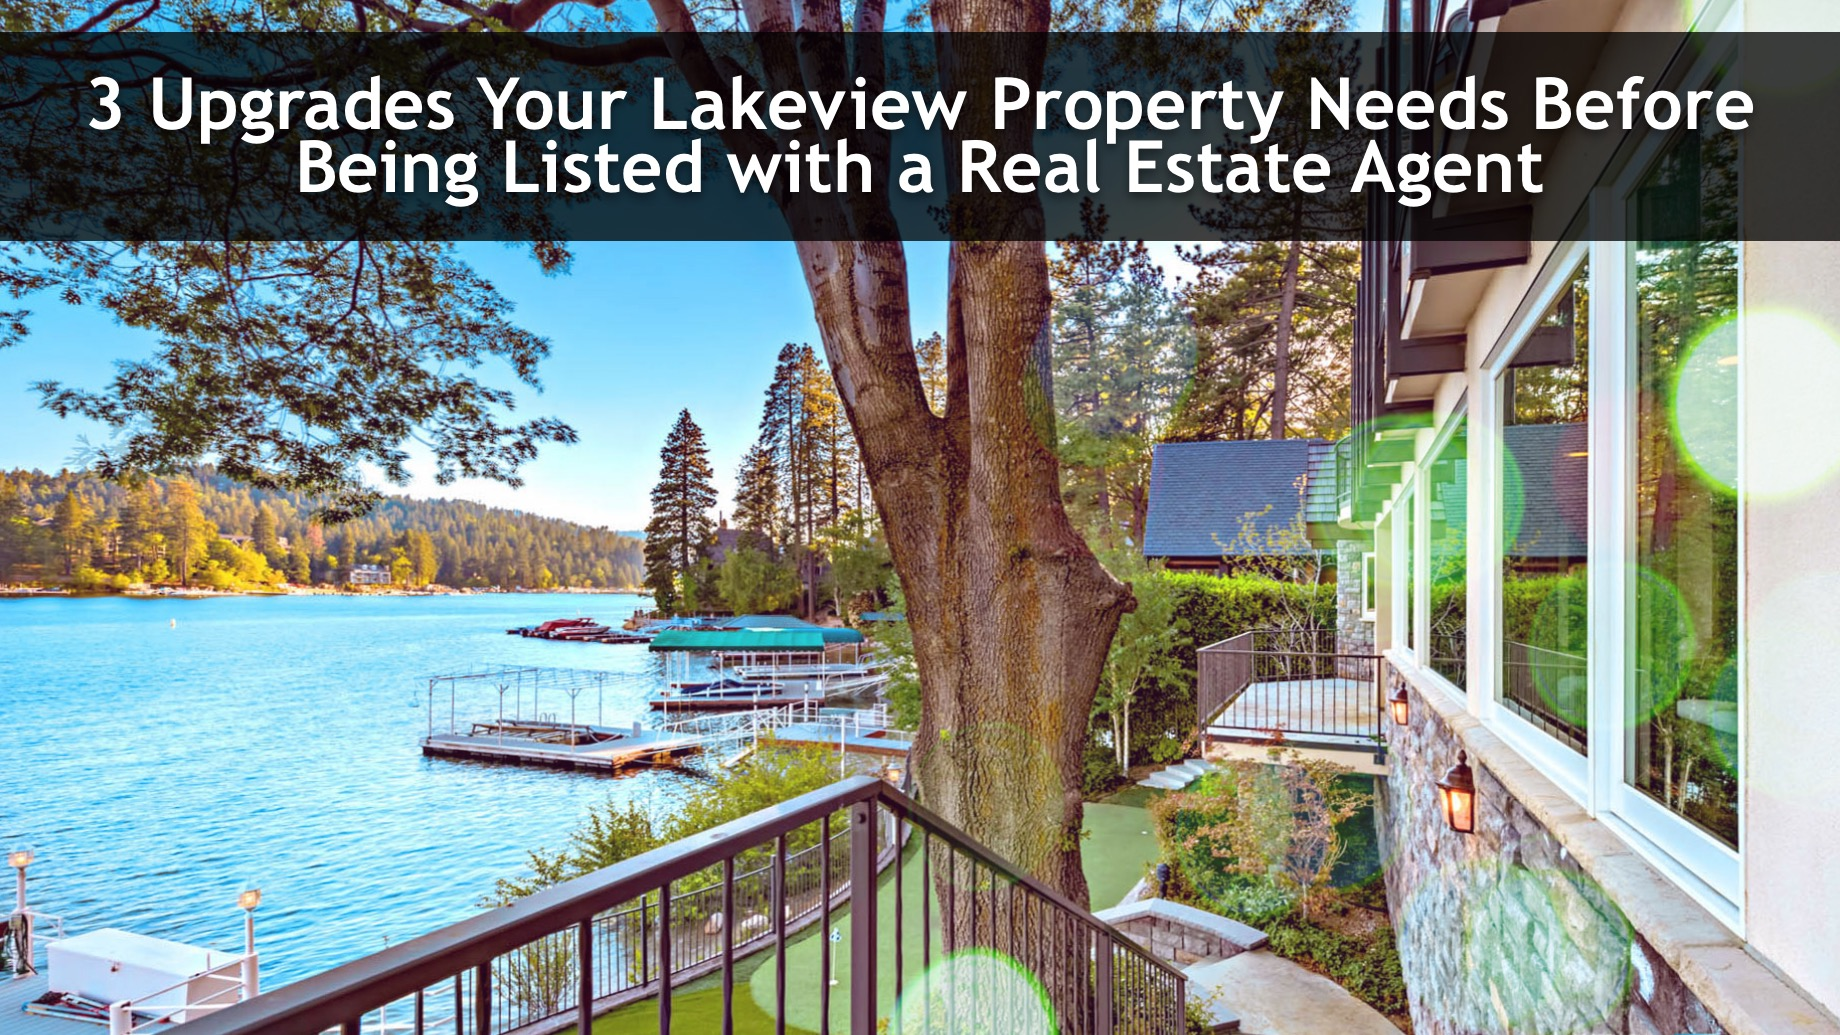 3 Upgrades Your Lakeview Property Needs Before Being Listed with a Real Estate Agent